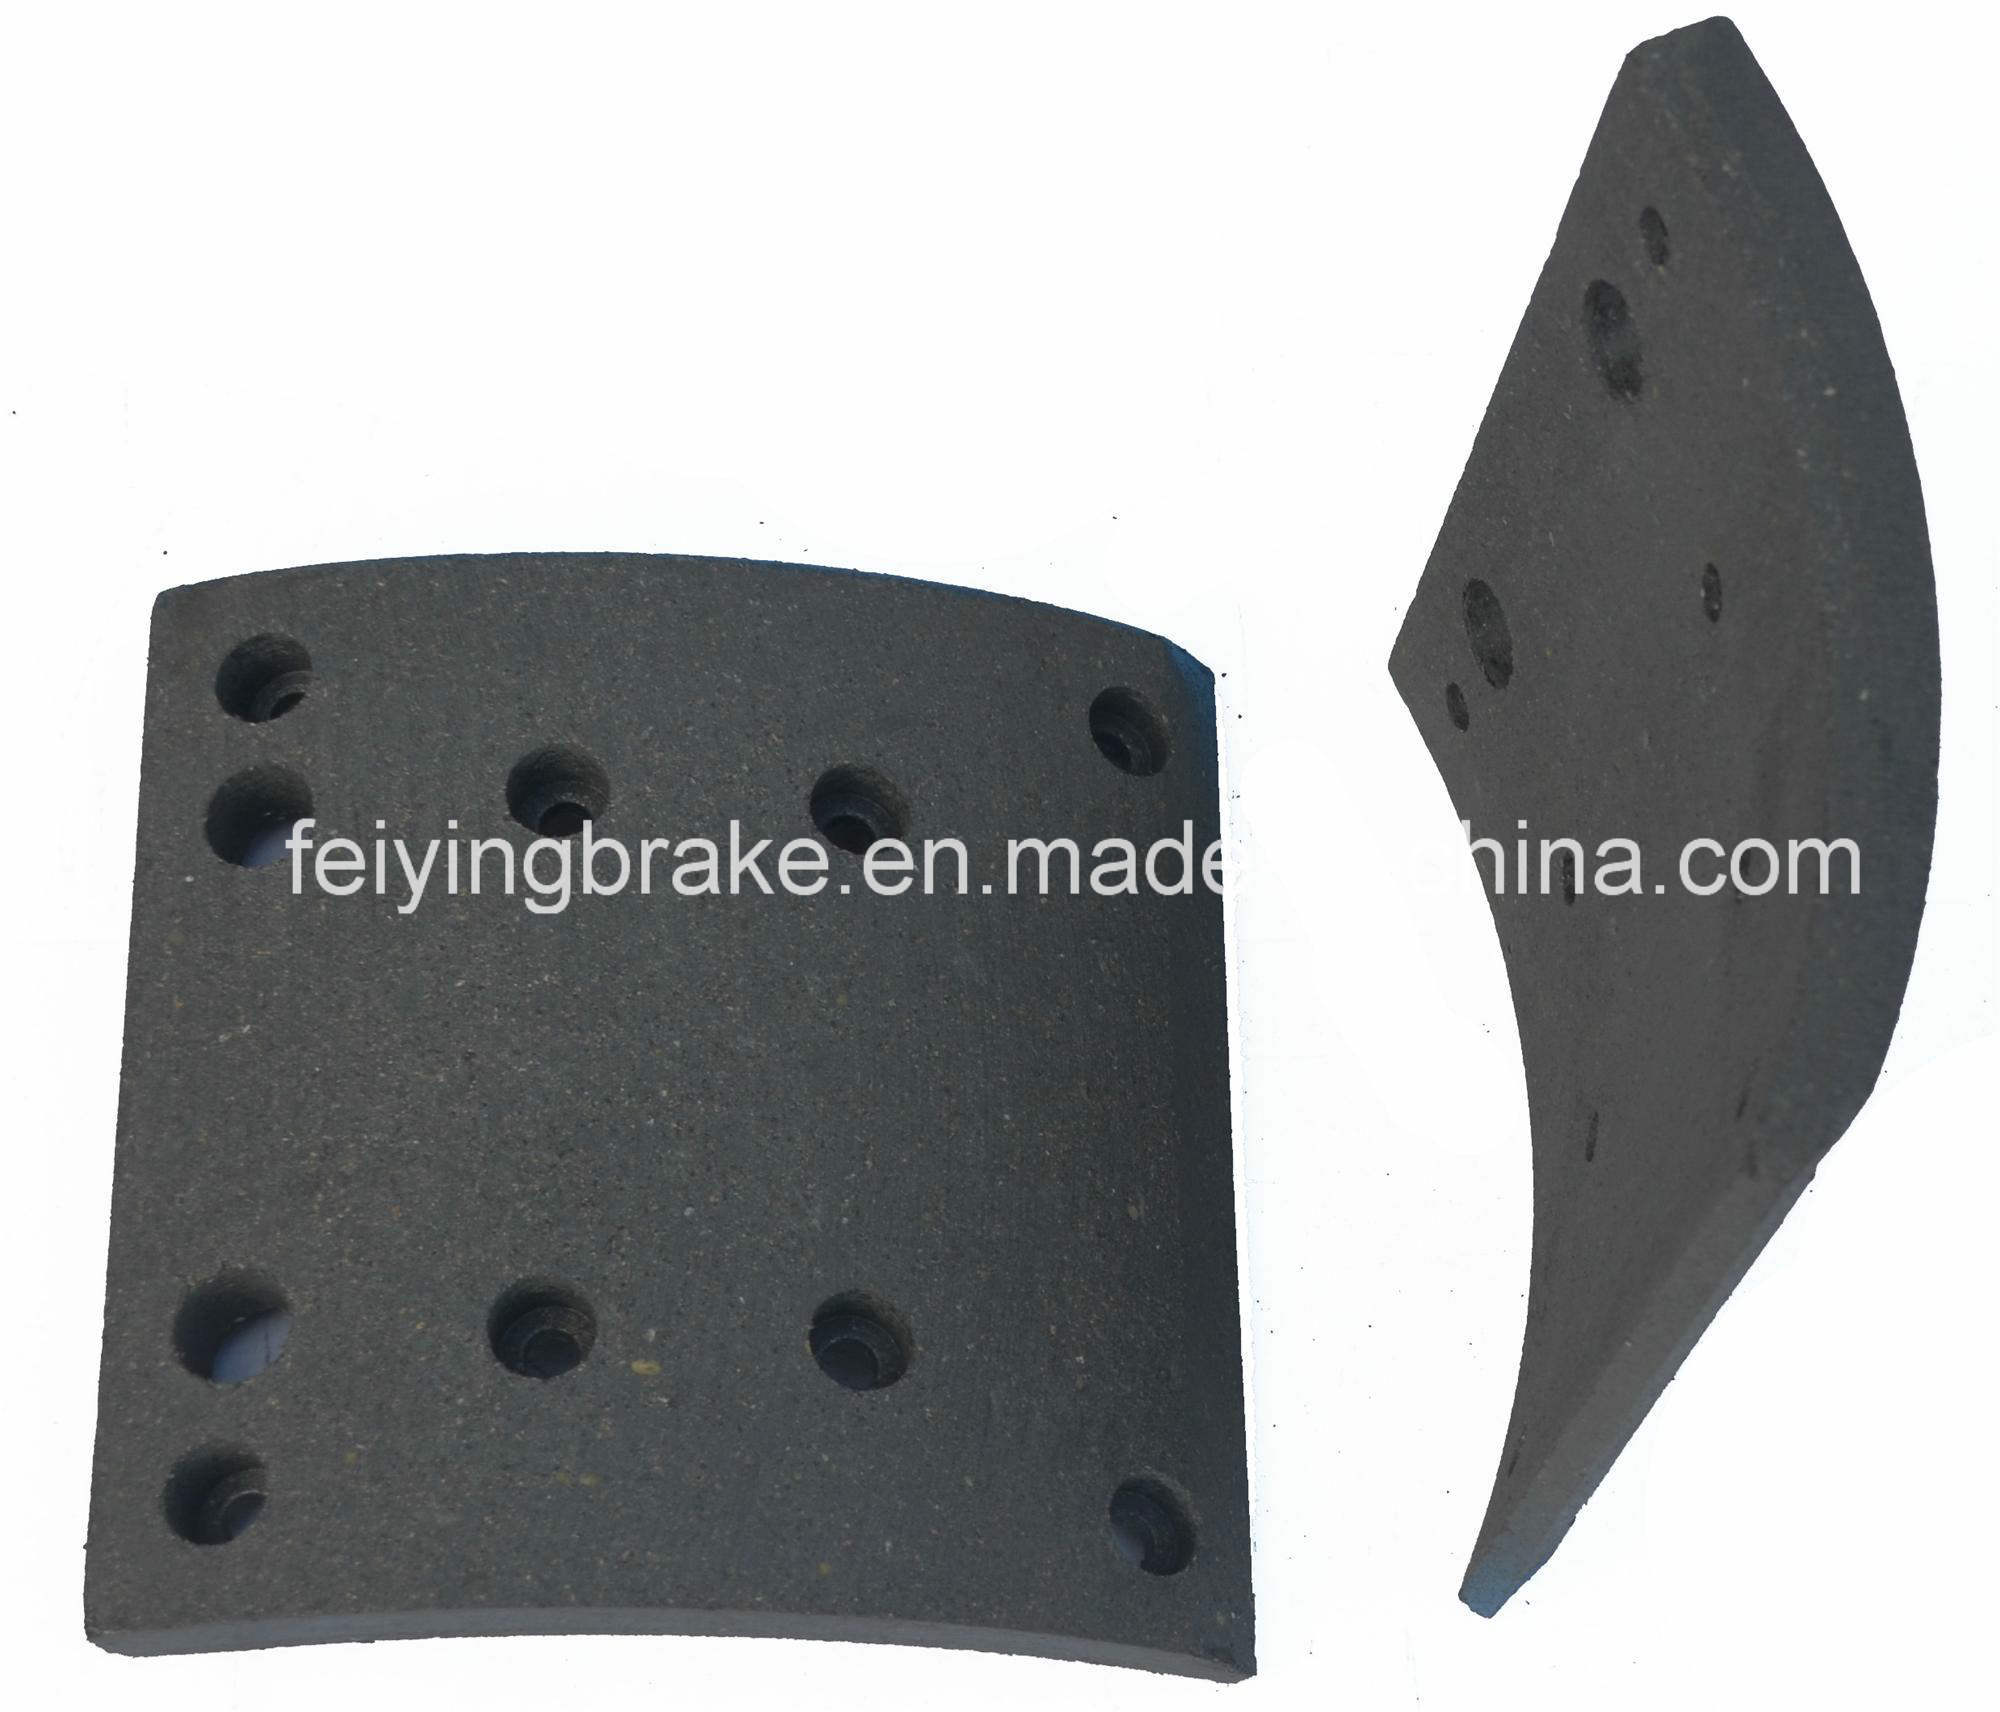 Brake Lining (WVA: 19495, BFMC: MP/32/2) for European Truck